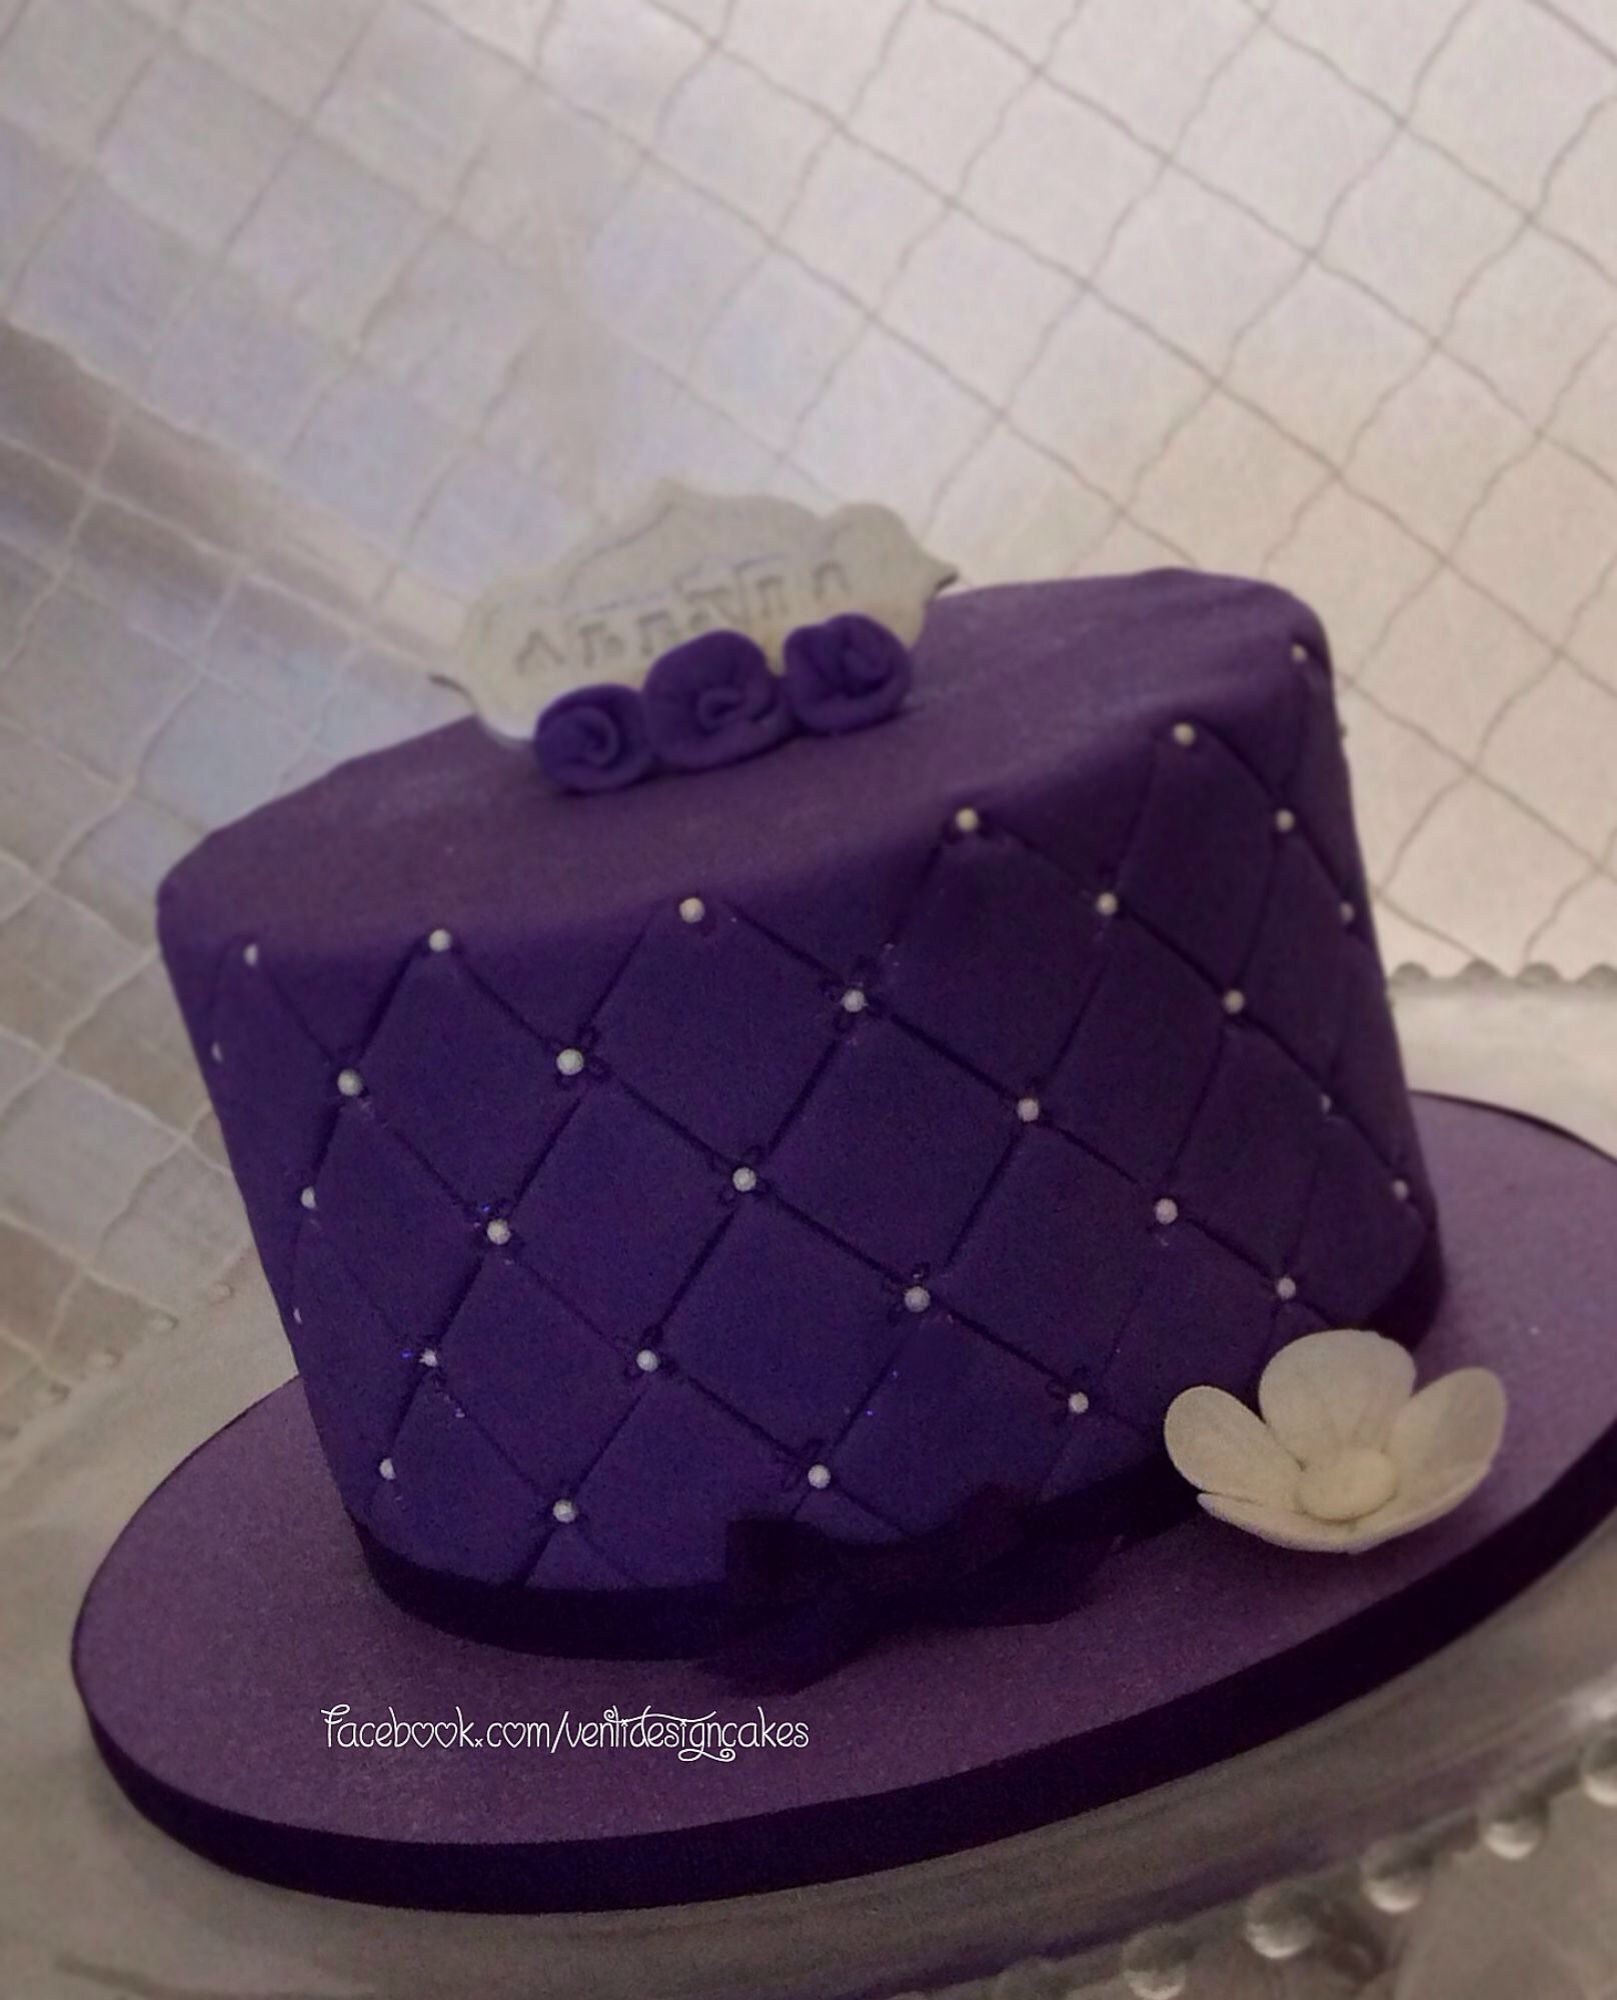 Fine Purple Birthday Cake Facebook Com Ventidesigncakes With Images Personalised Birthday Cards Rectzonderlifede